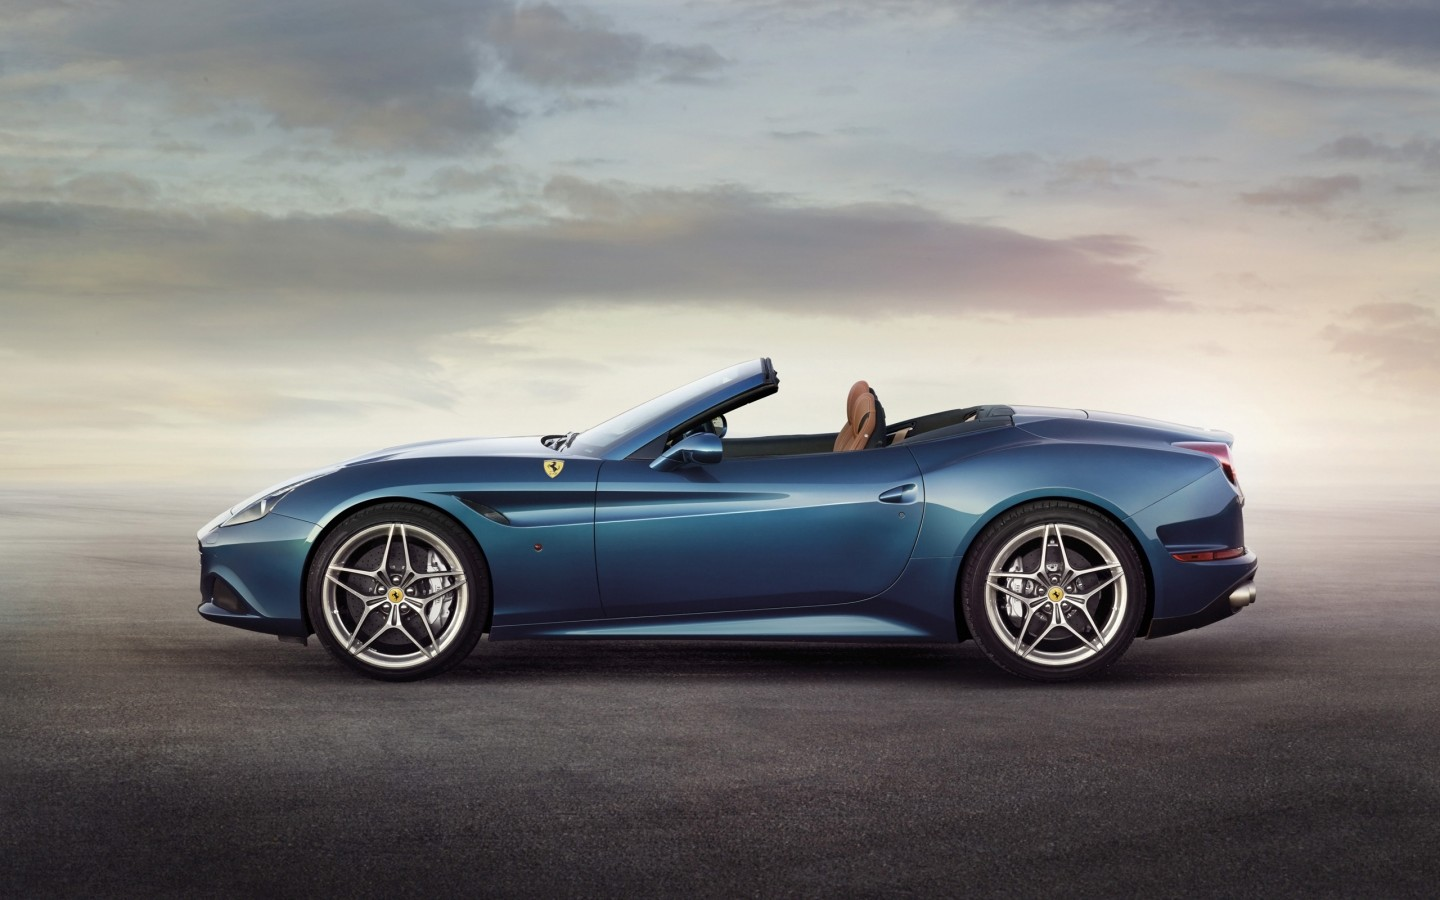 2014 ferrari california t 2 wallpaper hd car wallpapers. Black Bedroom Furniture Sets. Home Design Ideas